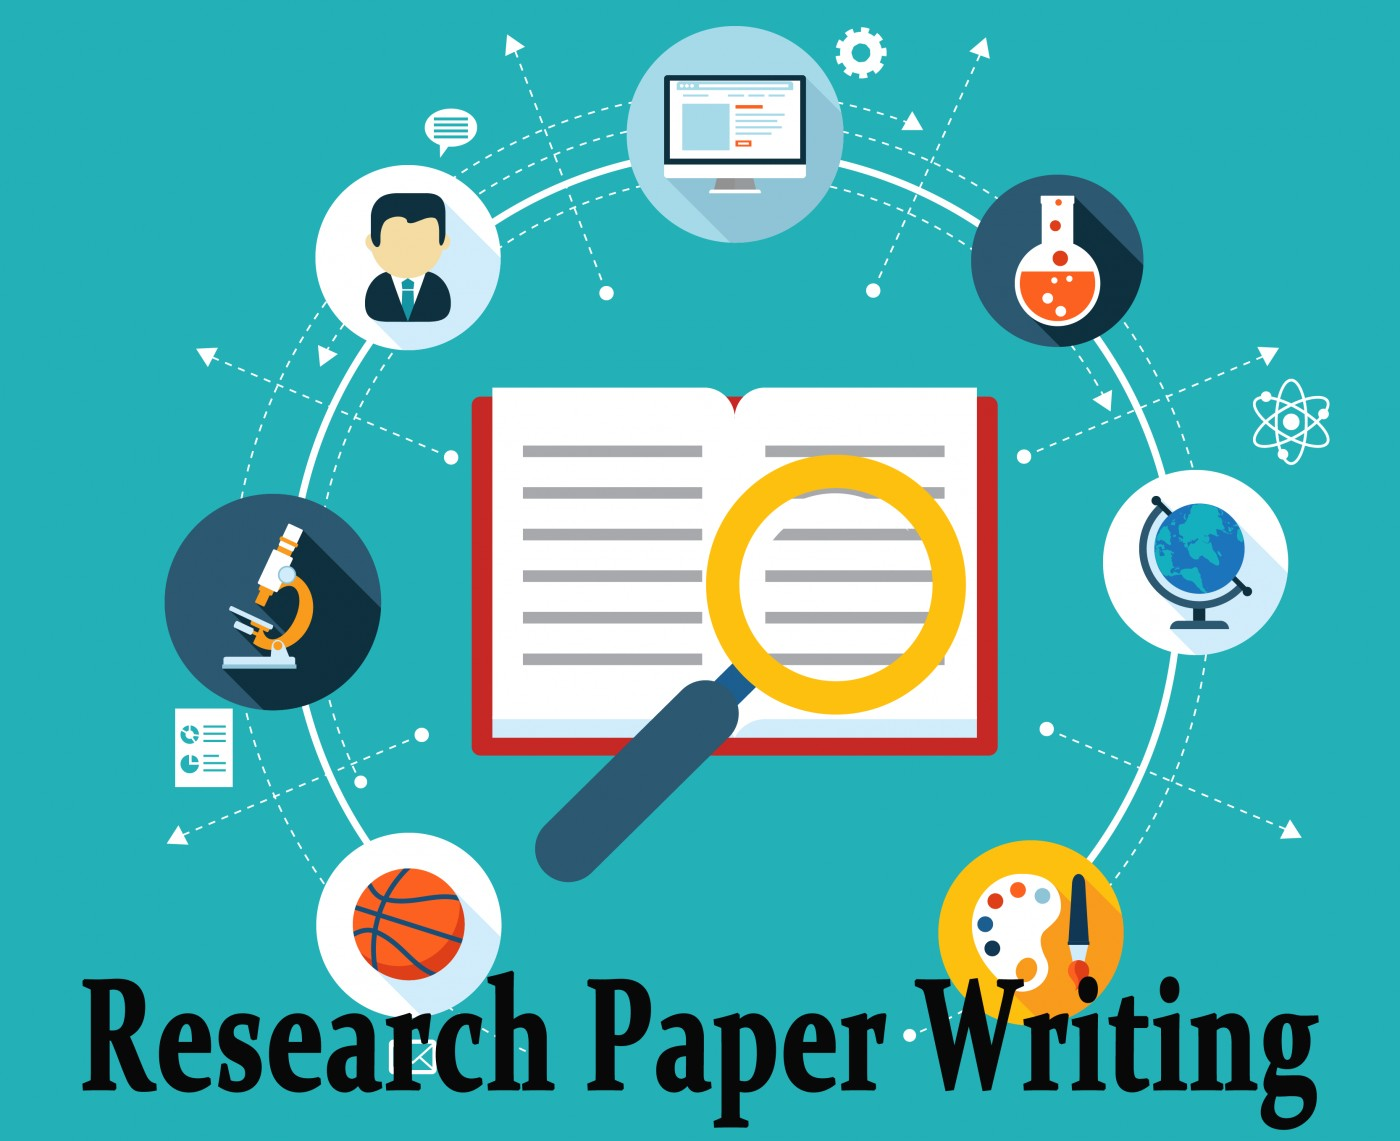 009 Writing The Research Paper 503 Effective Phenomenal A Handbook 8th Edition Papers Complete Guide 16th Pdf James D Lester 1400